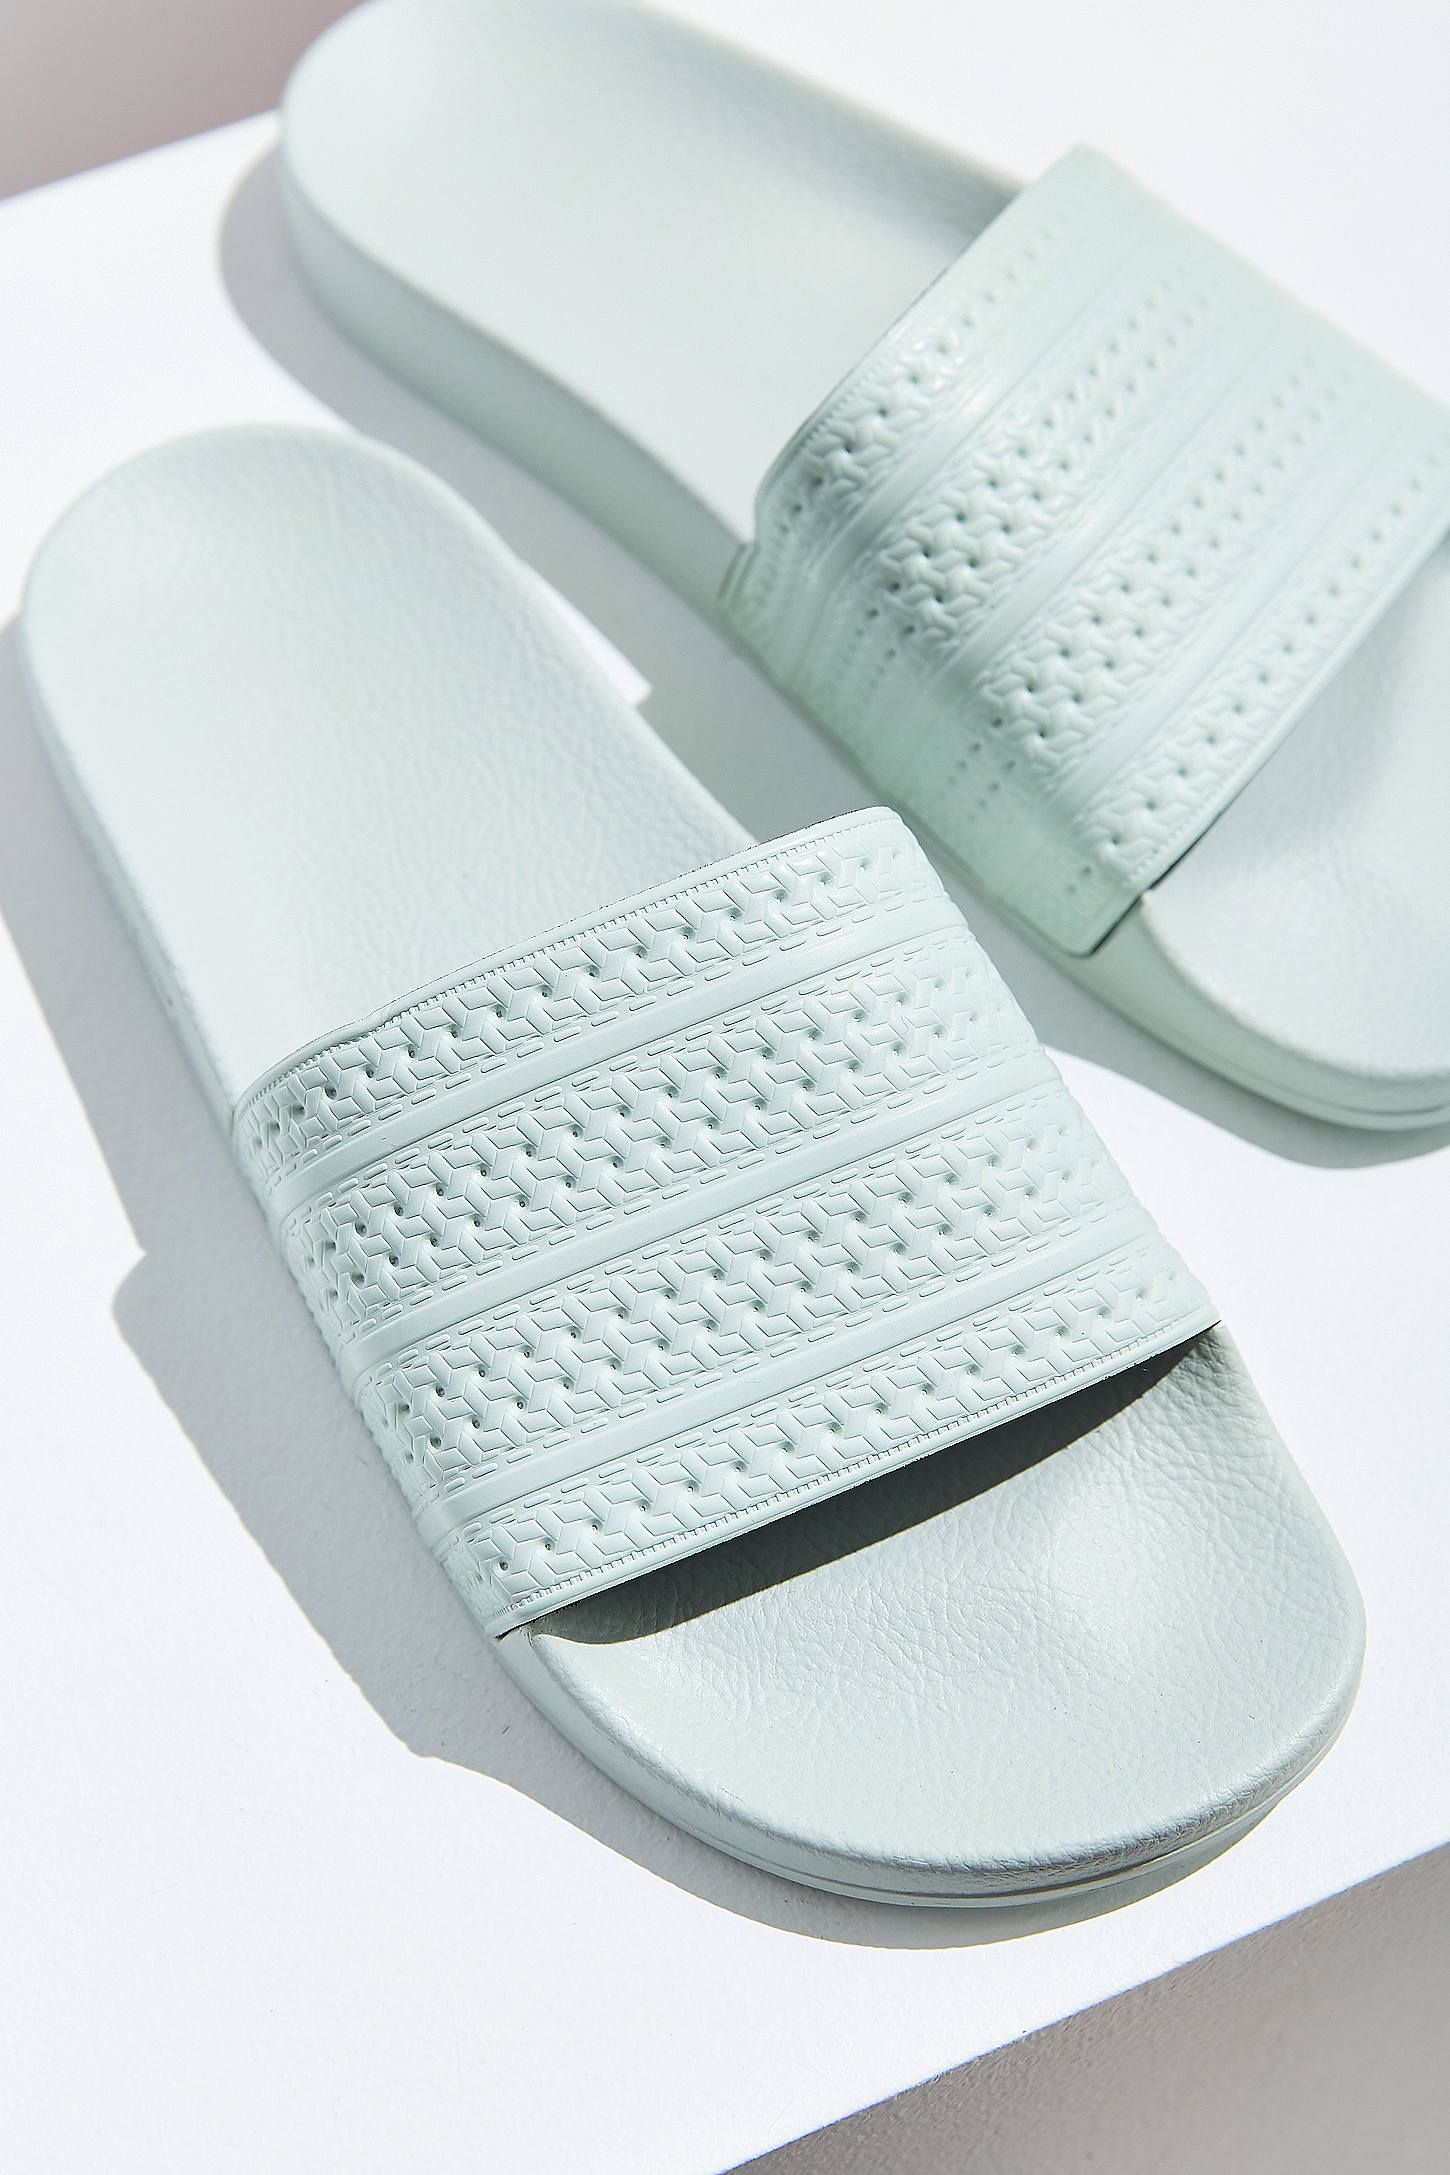 dfe8d61b42fef2 Slide View  1  adidas Originals Adilette Mono Pool Slide